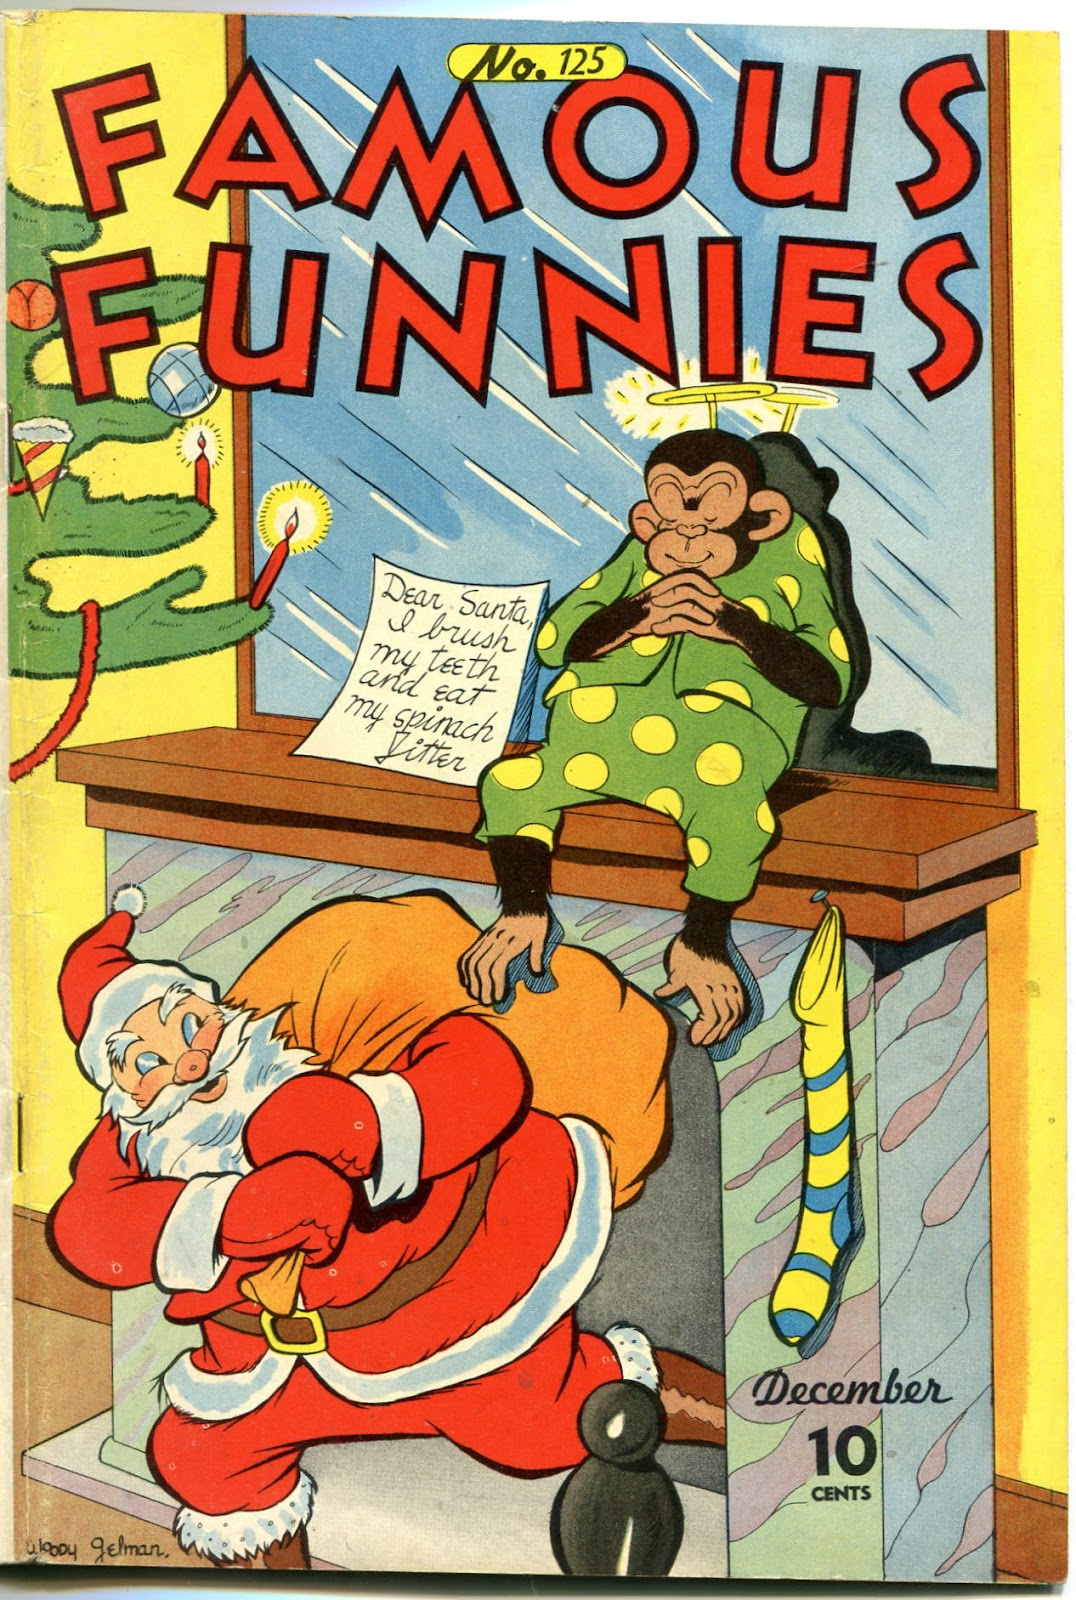 Read online Famous Funnies comic -  Issue #125 - 1